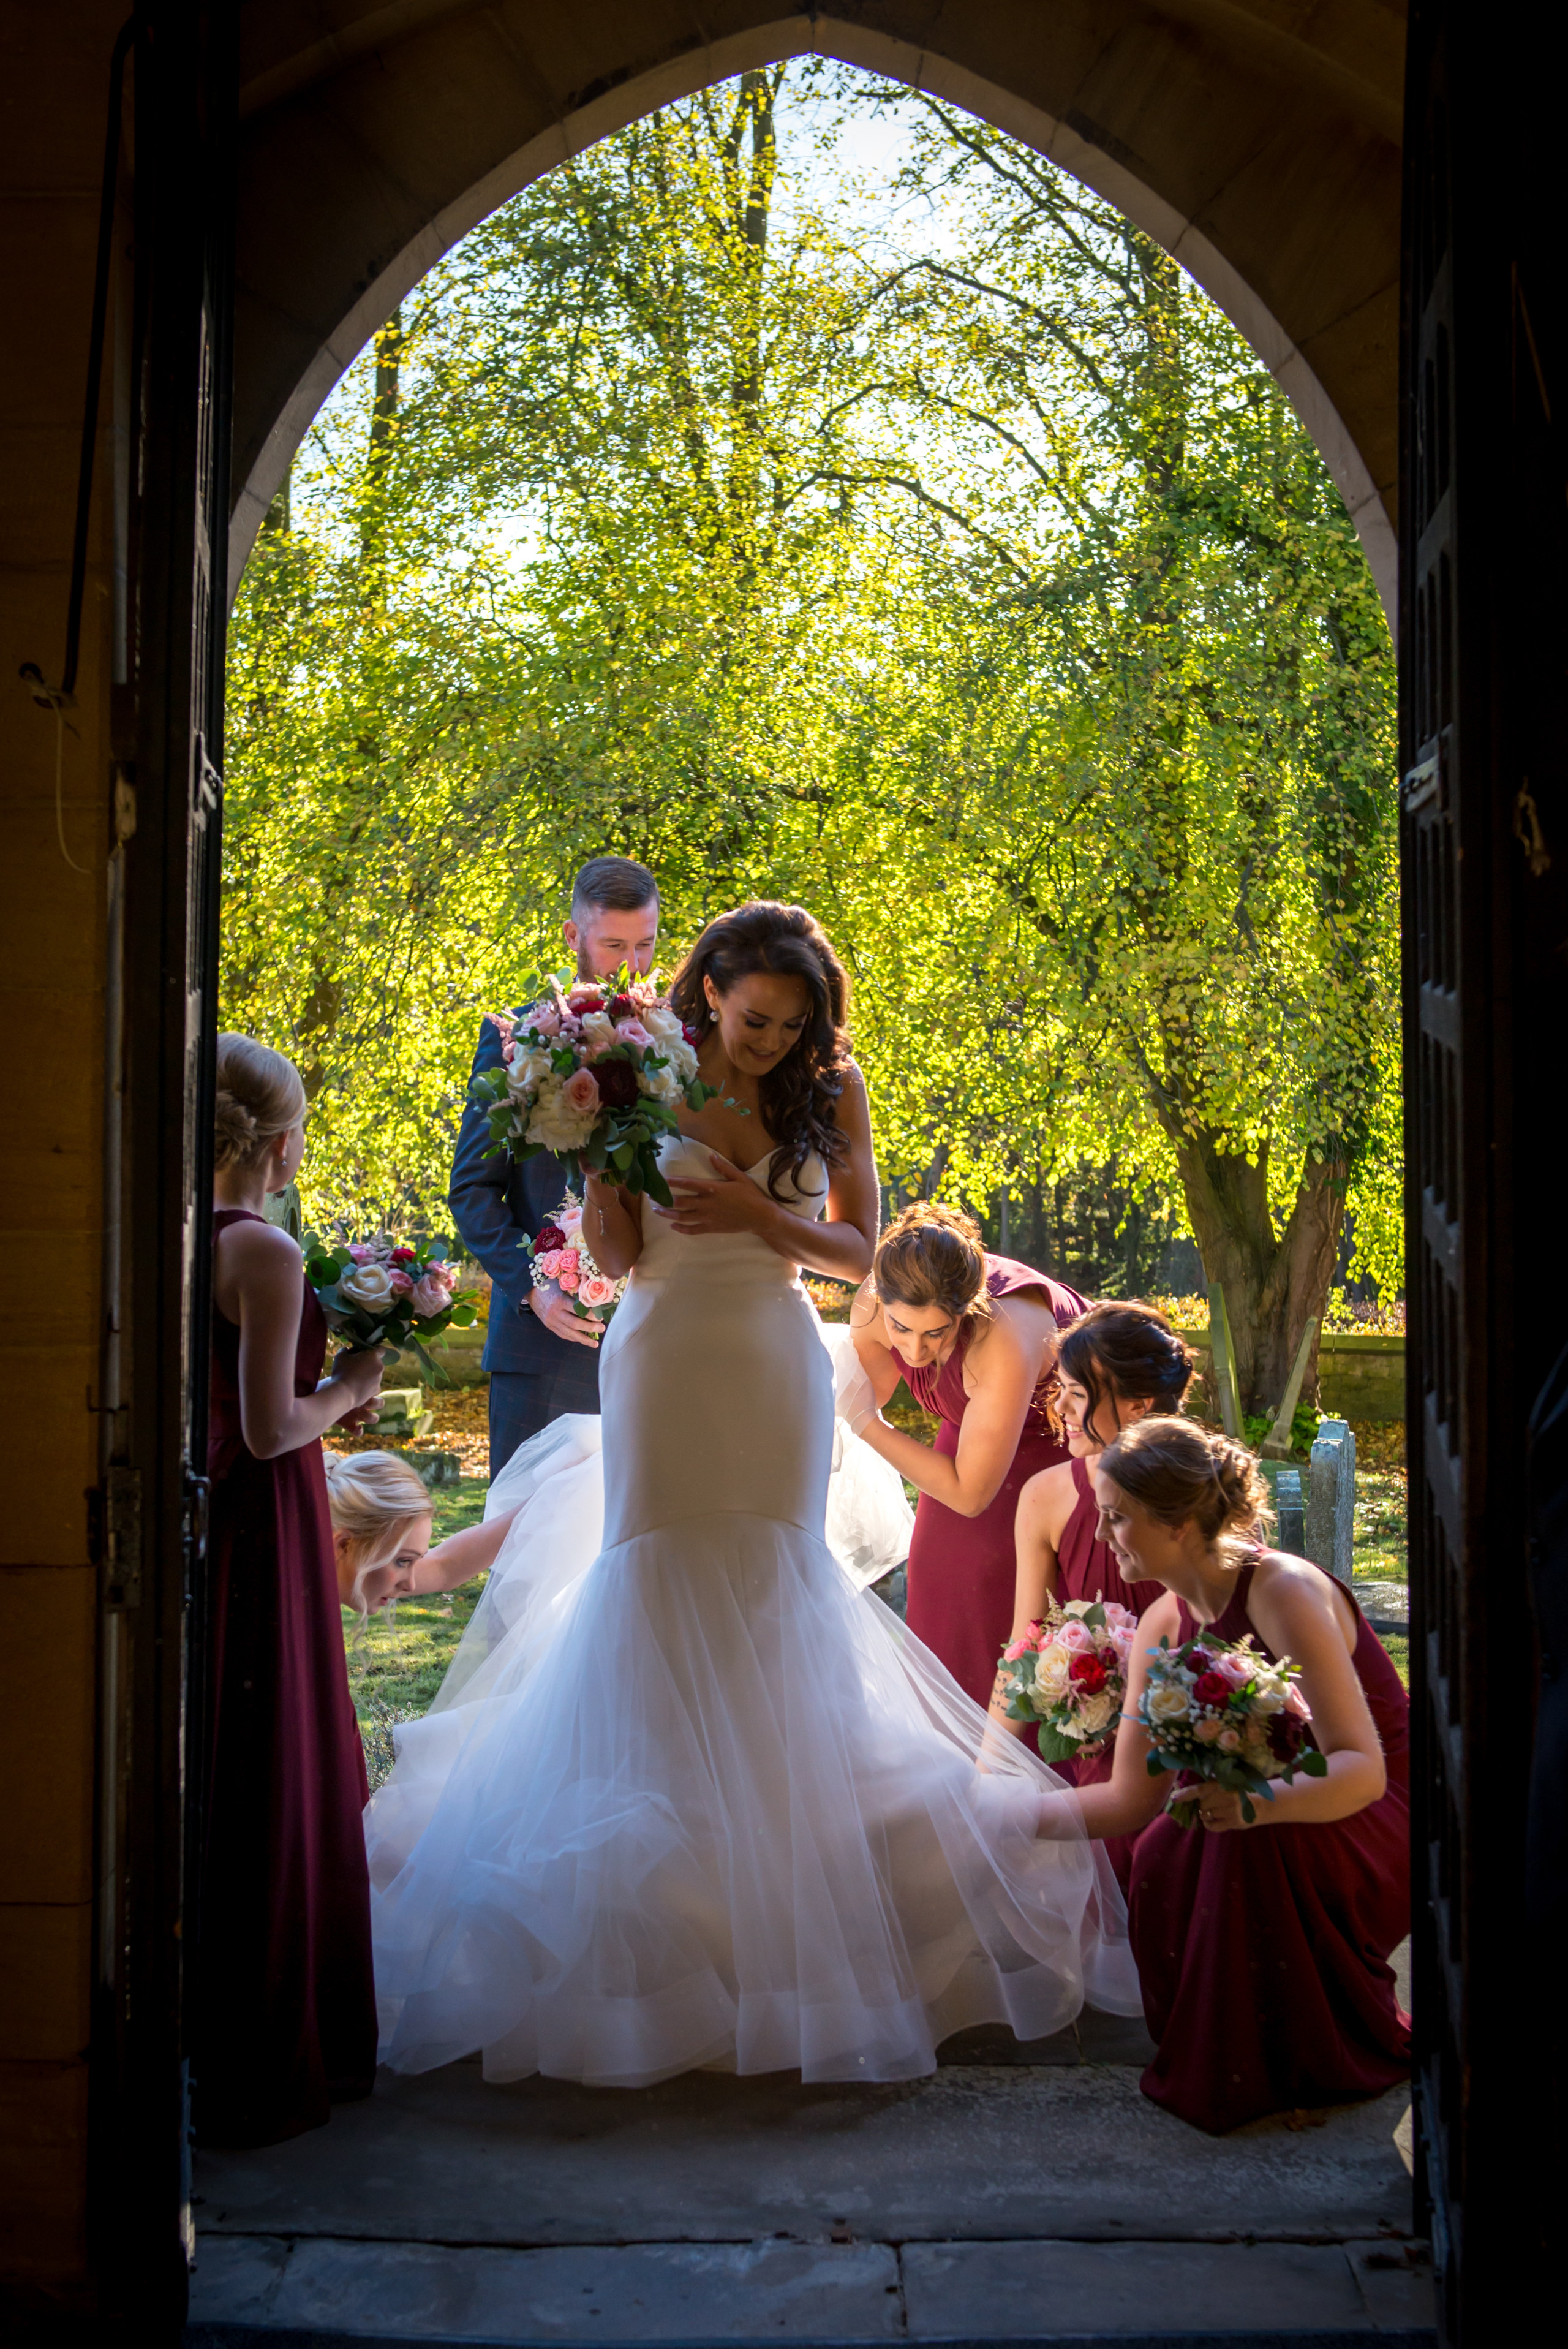 Final preparations before the bride's church ceremony entrance with bridesmaids adjusting the wedding dress